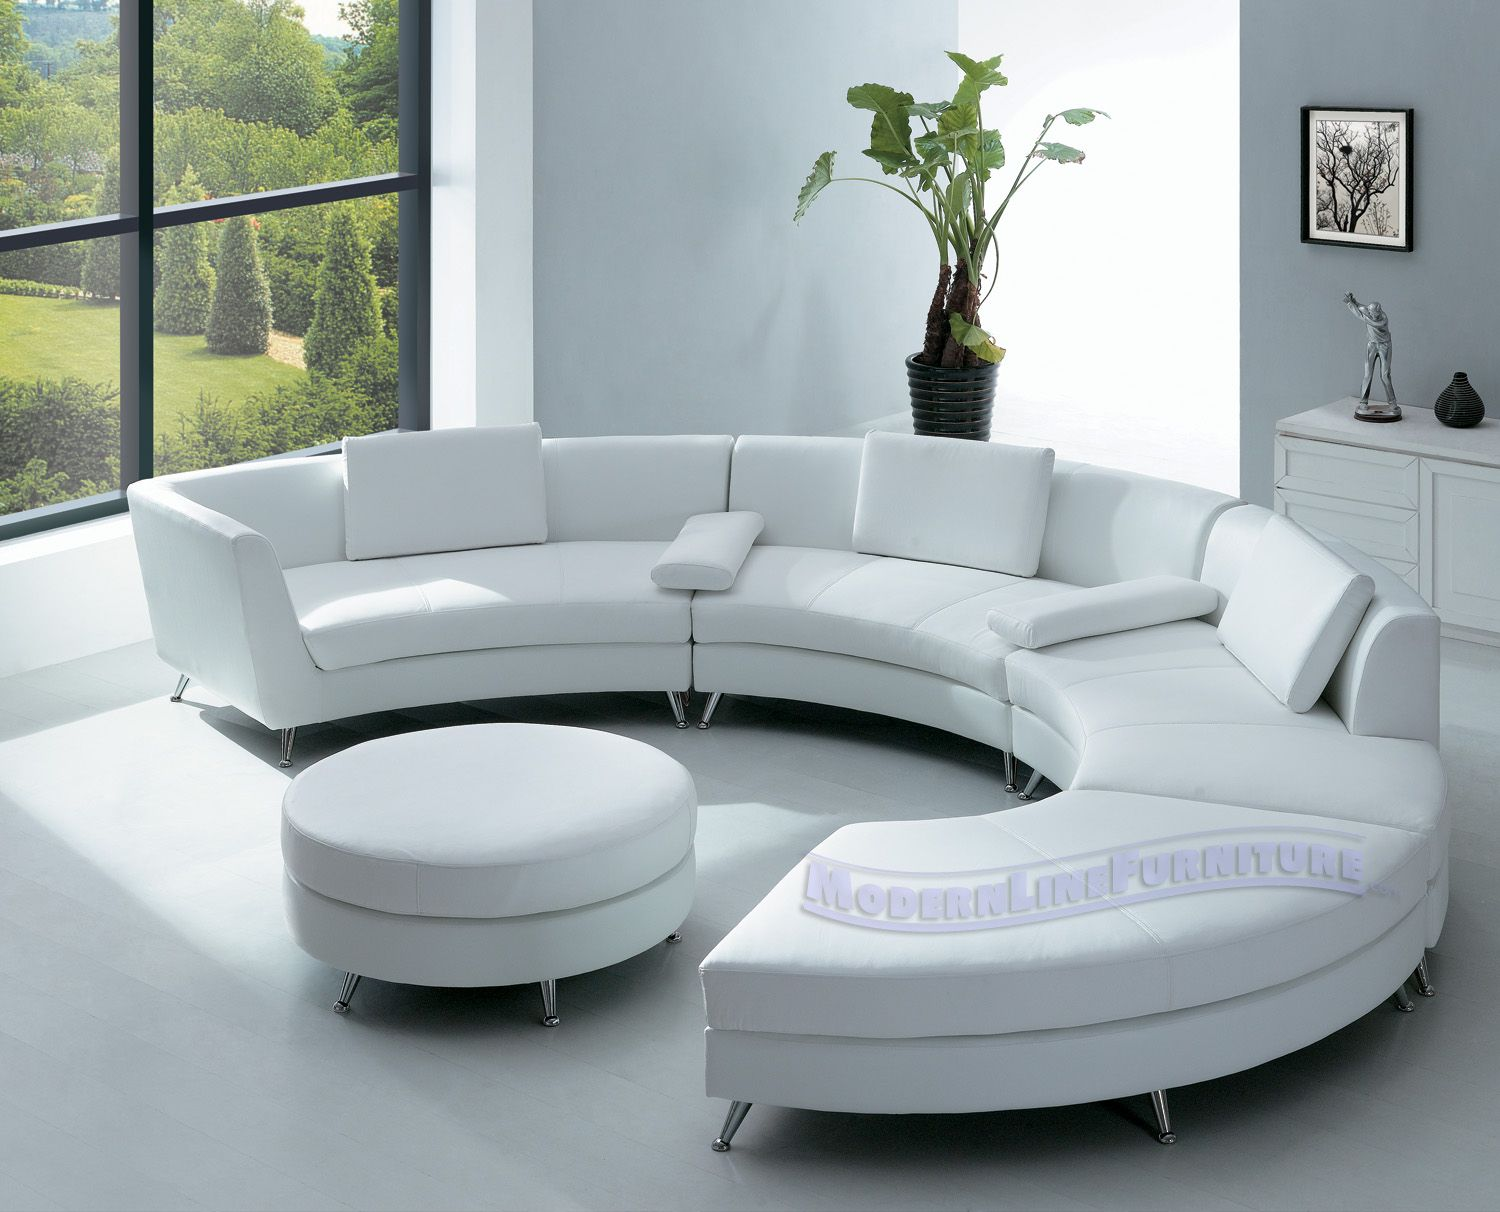 Furniture Sofa Design best 25+ contemporary sofa ideas on pinterest | modern couch